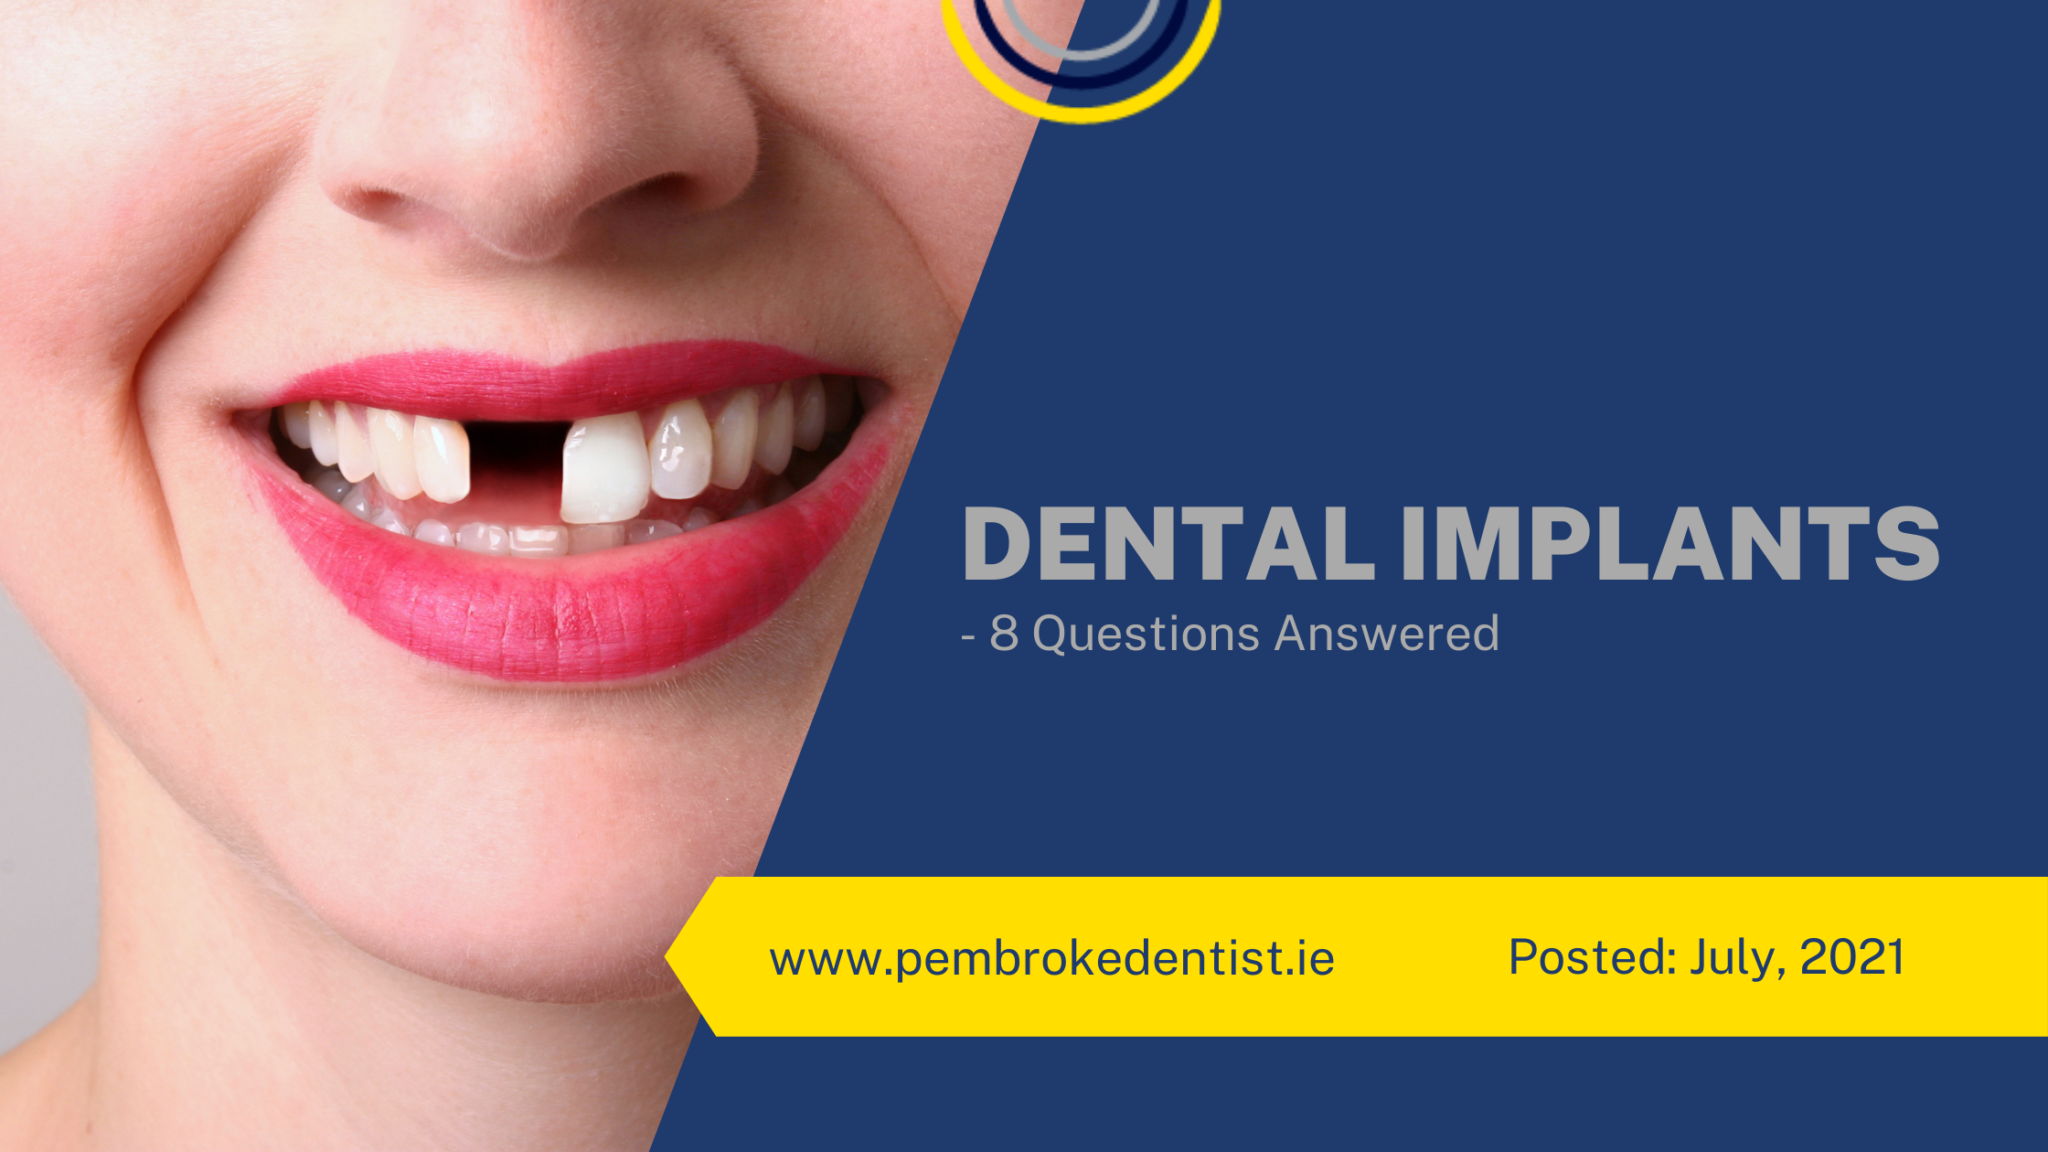 Dental implants- 8 questions answered